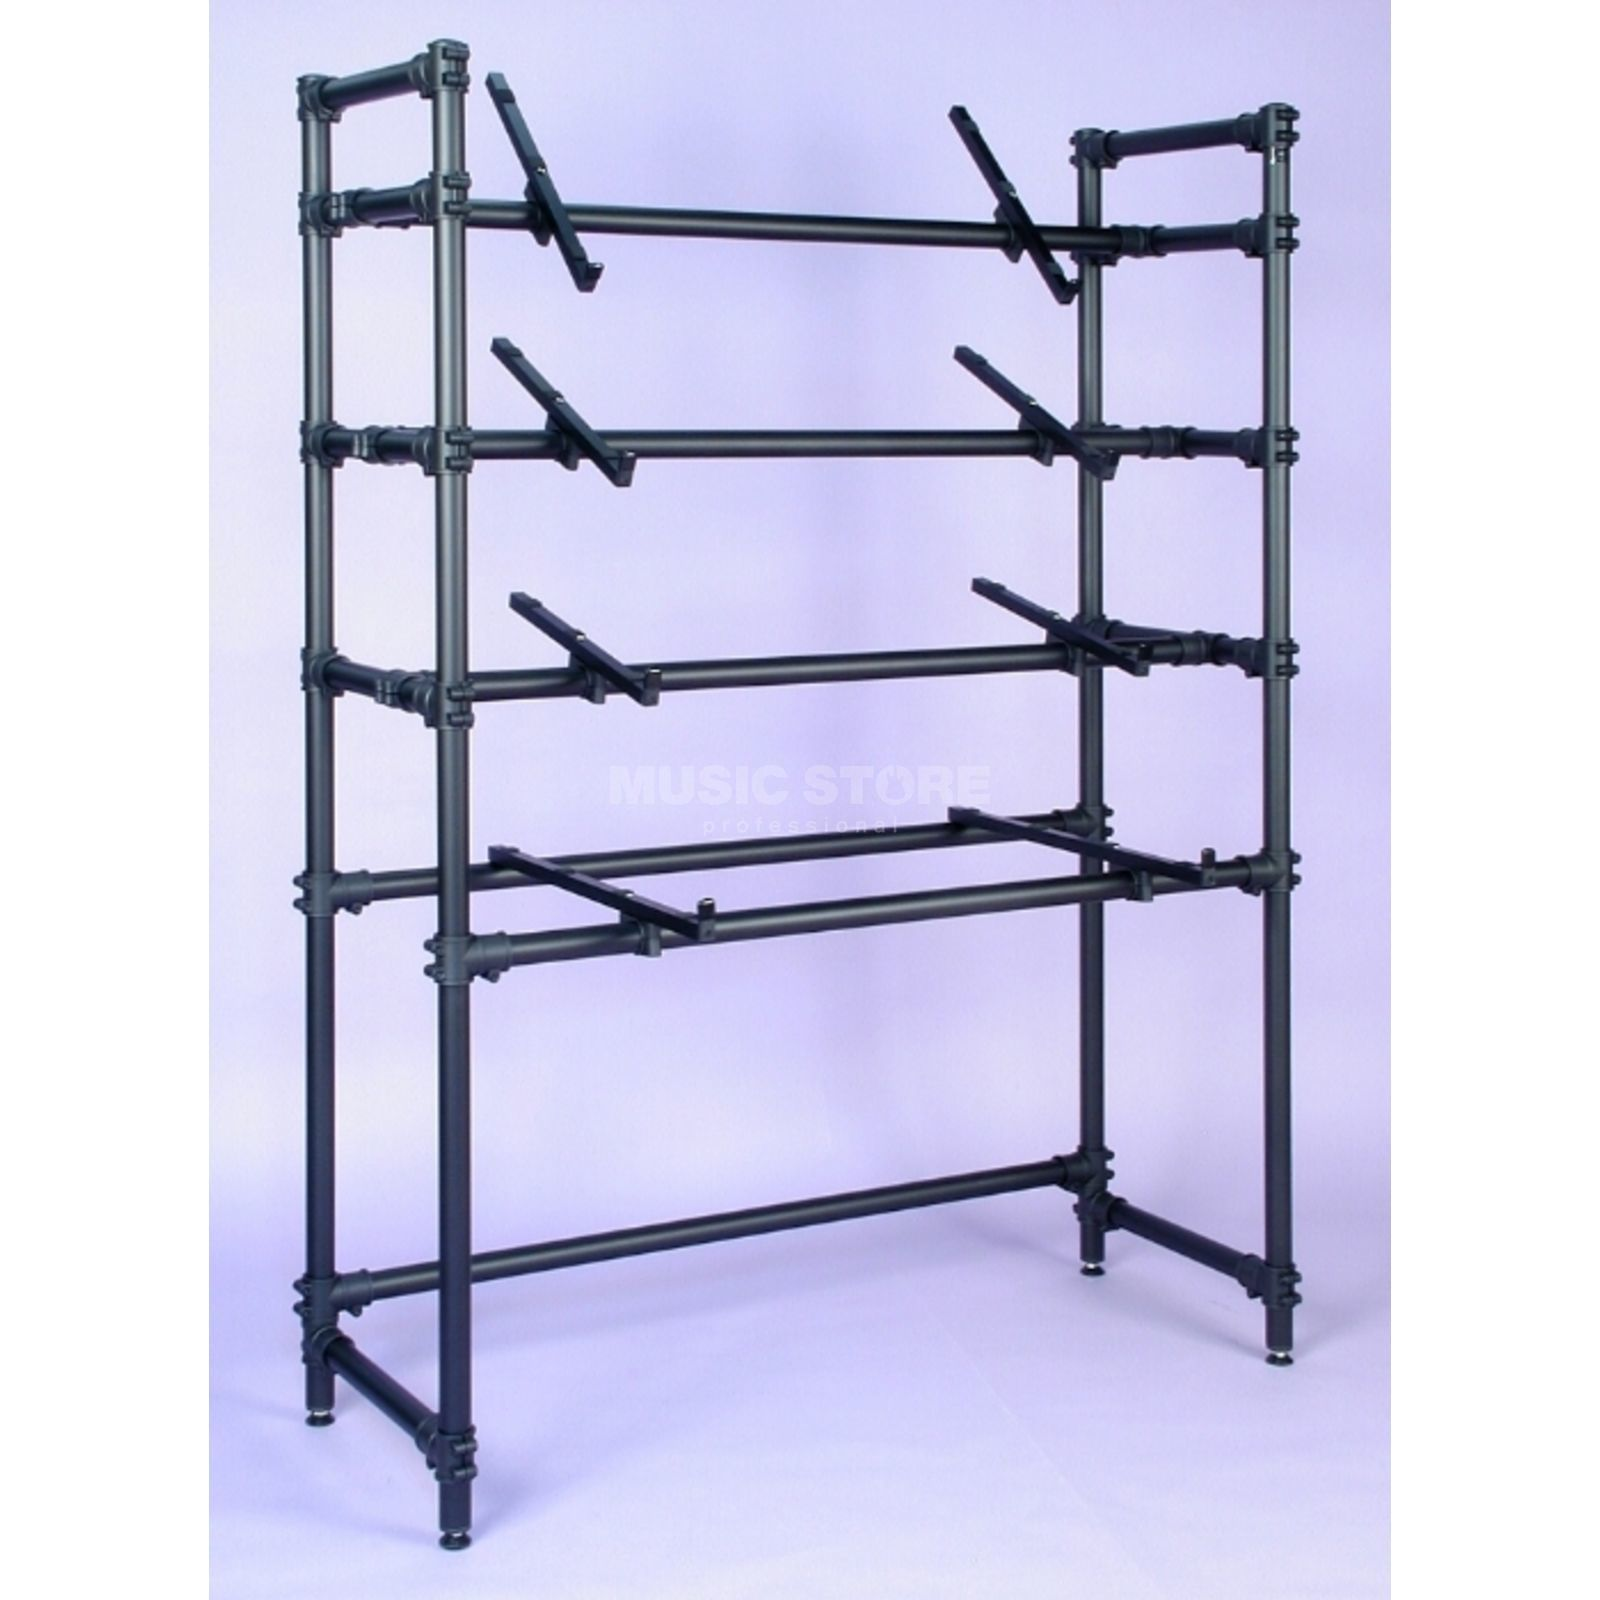 Jaspers Keyboard Rack 170-4-120 Black Produktbillede